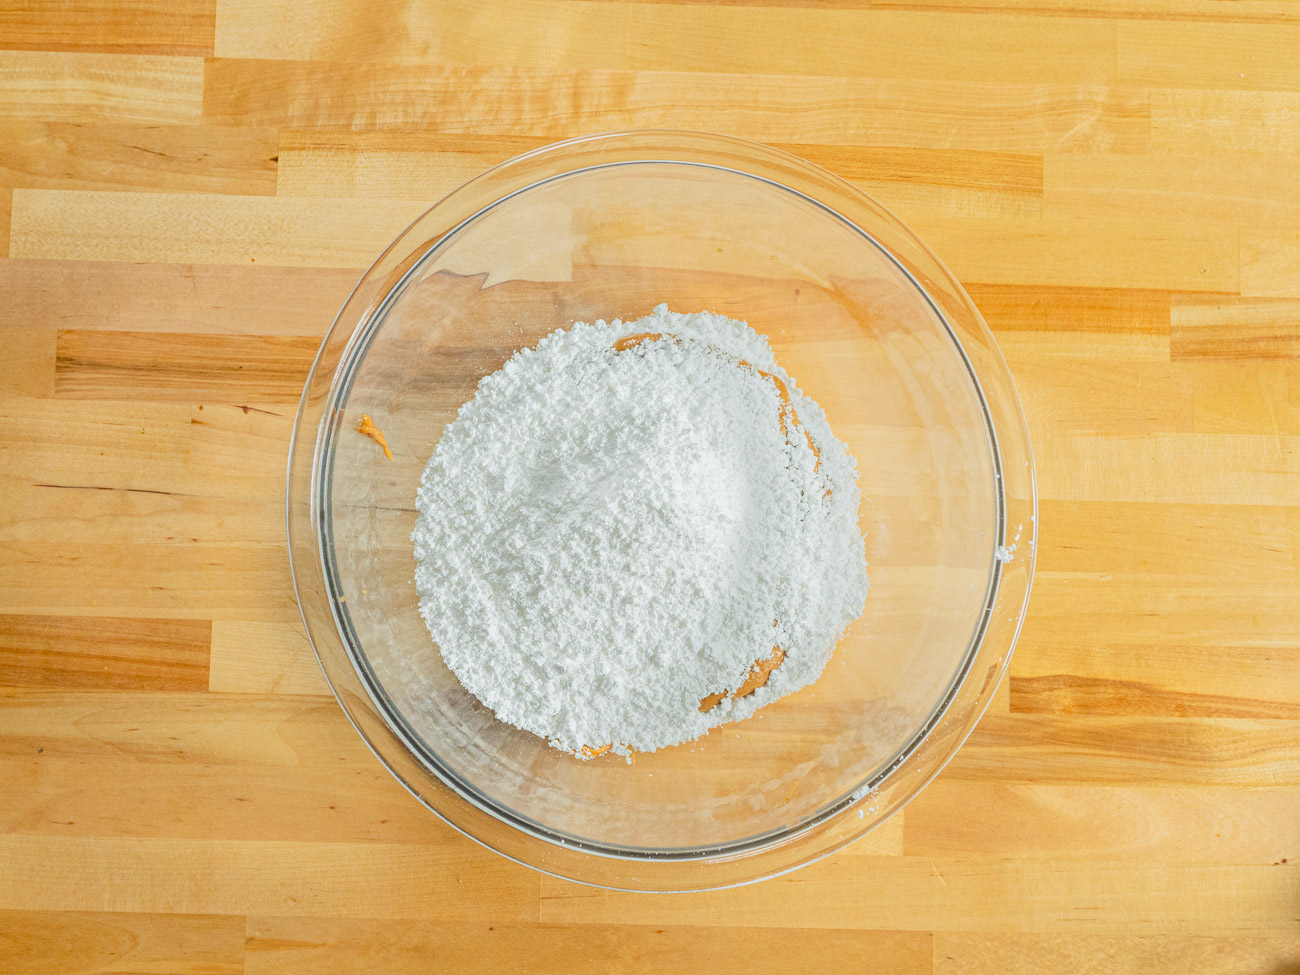 Meanwhile, mix powdered sugar and peanut butter in a medium-sized bowl. Form the mixture into about 1 inch balls (1 for each cookie). Set aside.